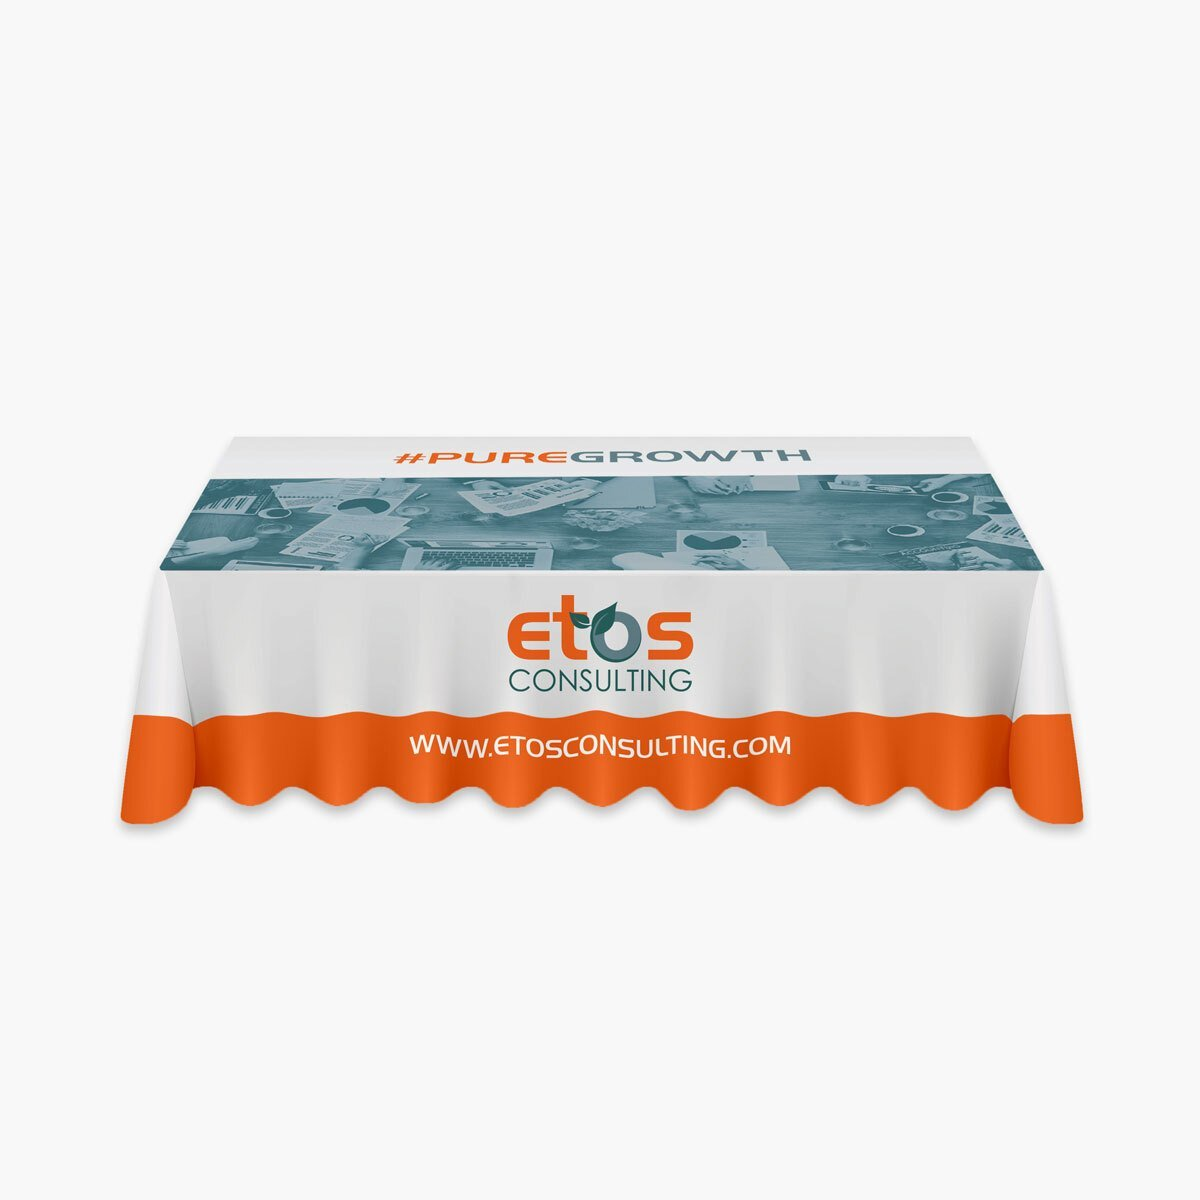 ETOS Consulting Table Design by BrandSwan, a graphic design company